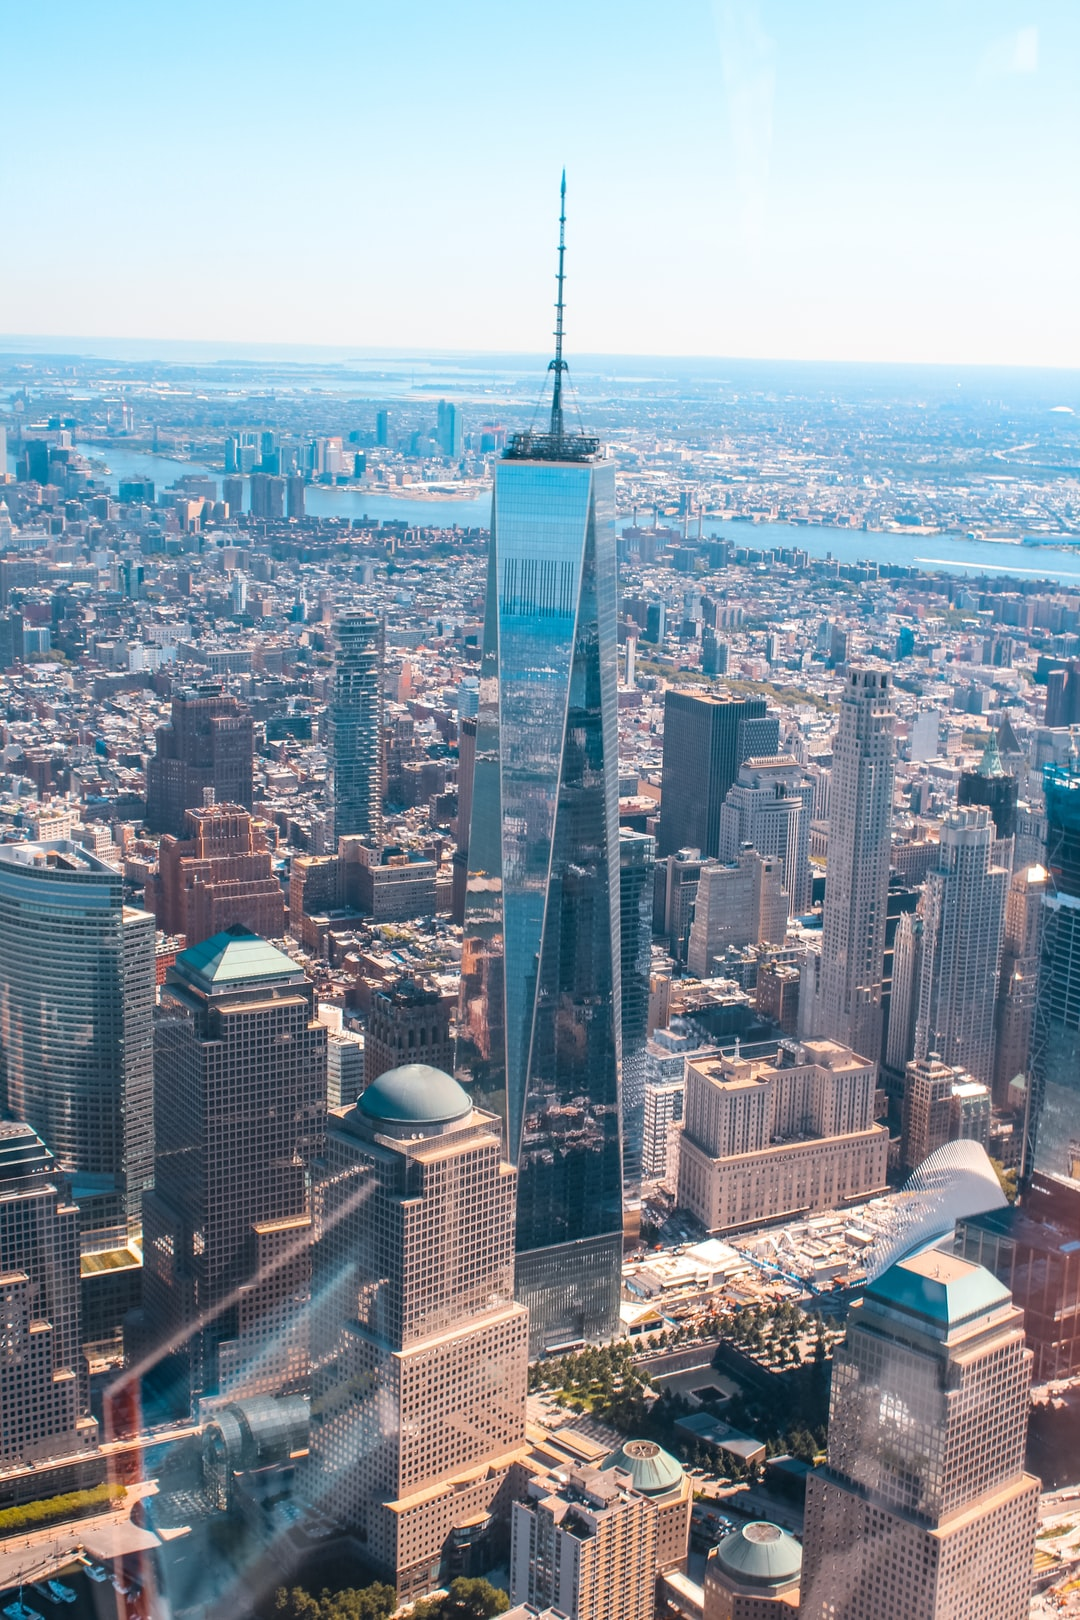 View of the new world trade centre from a helicopter